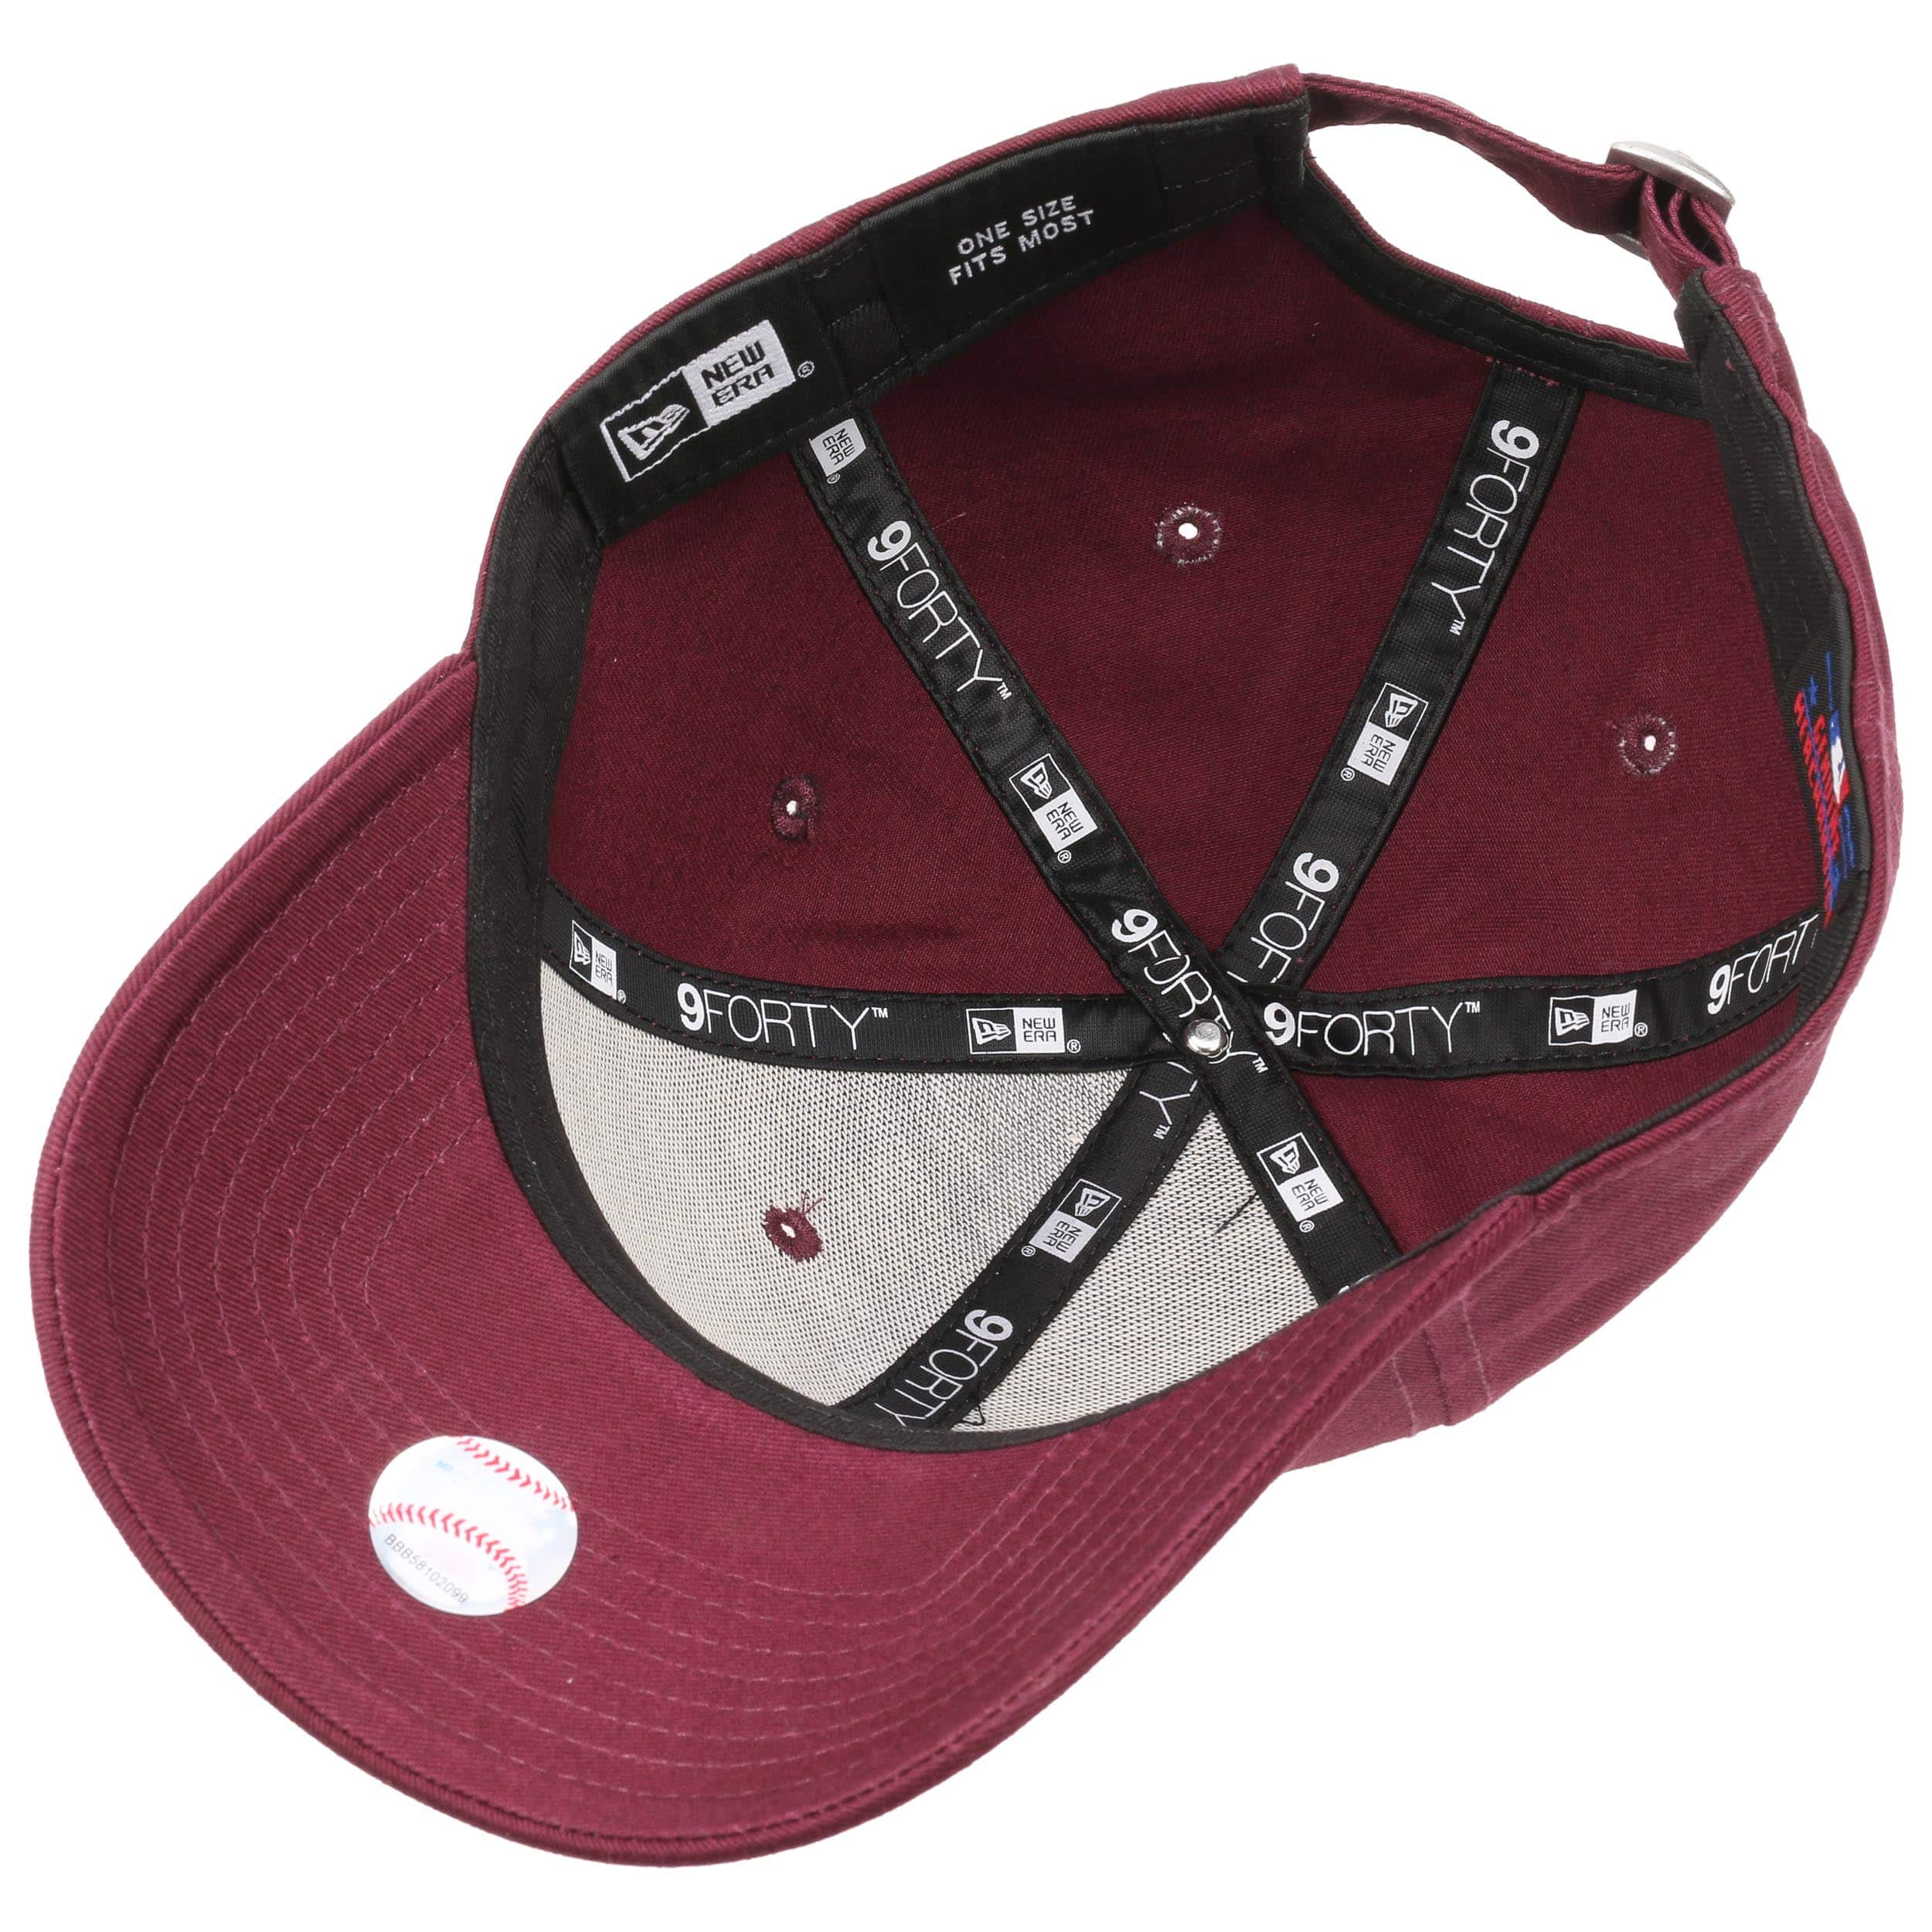 ... light brown 2 · 9Forty League Essential NY Cap by New Era - bordeaux 2  ... ed8e8772fa2